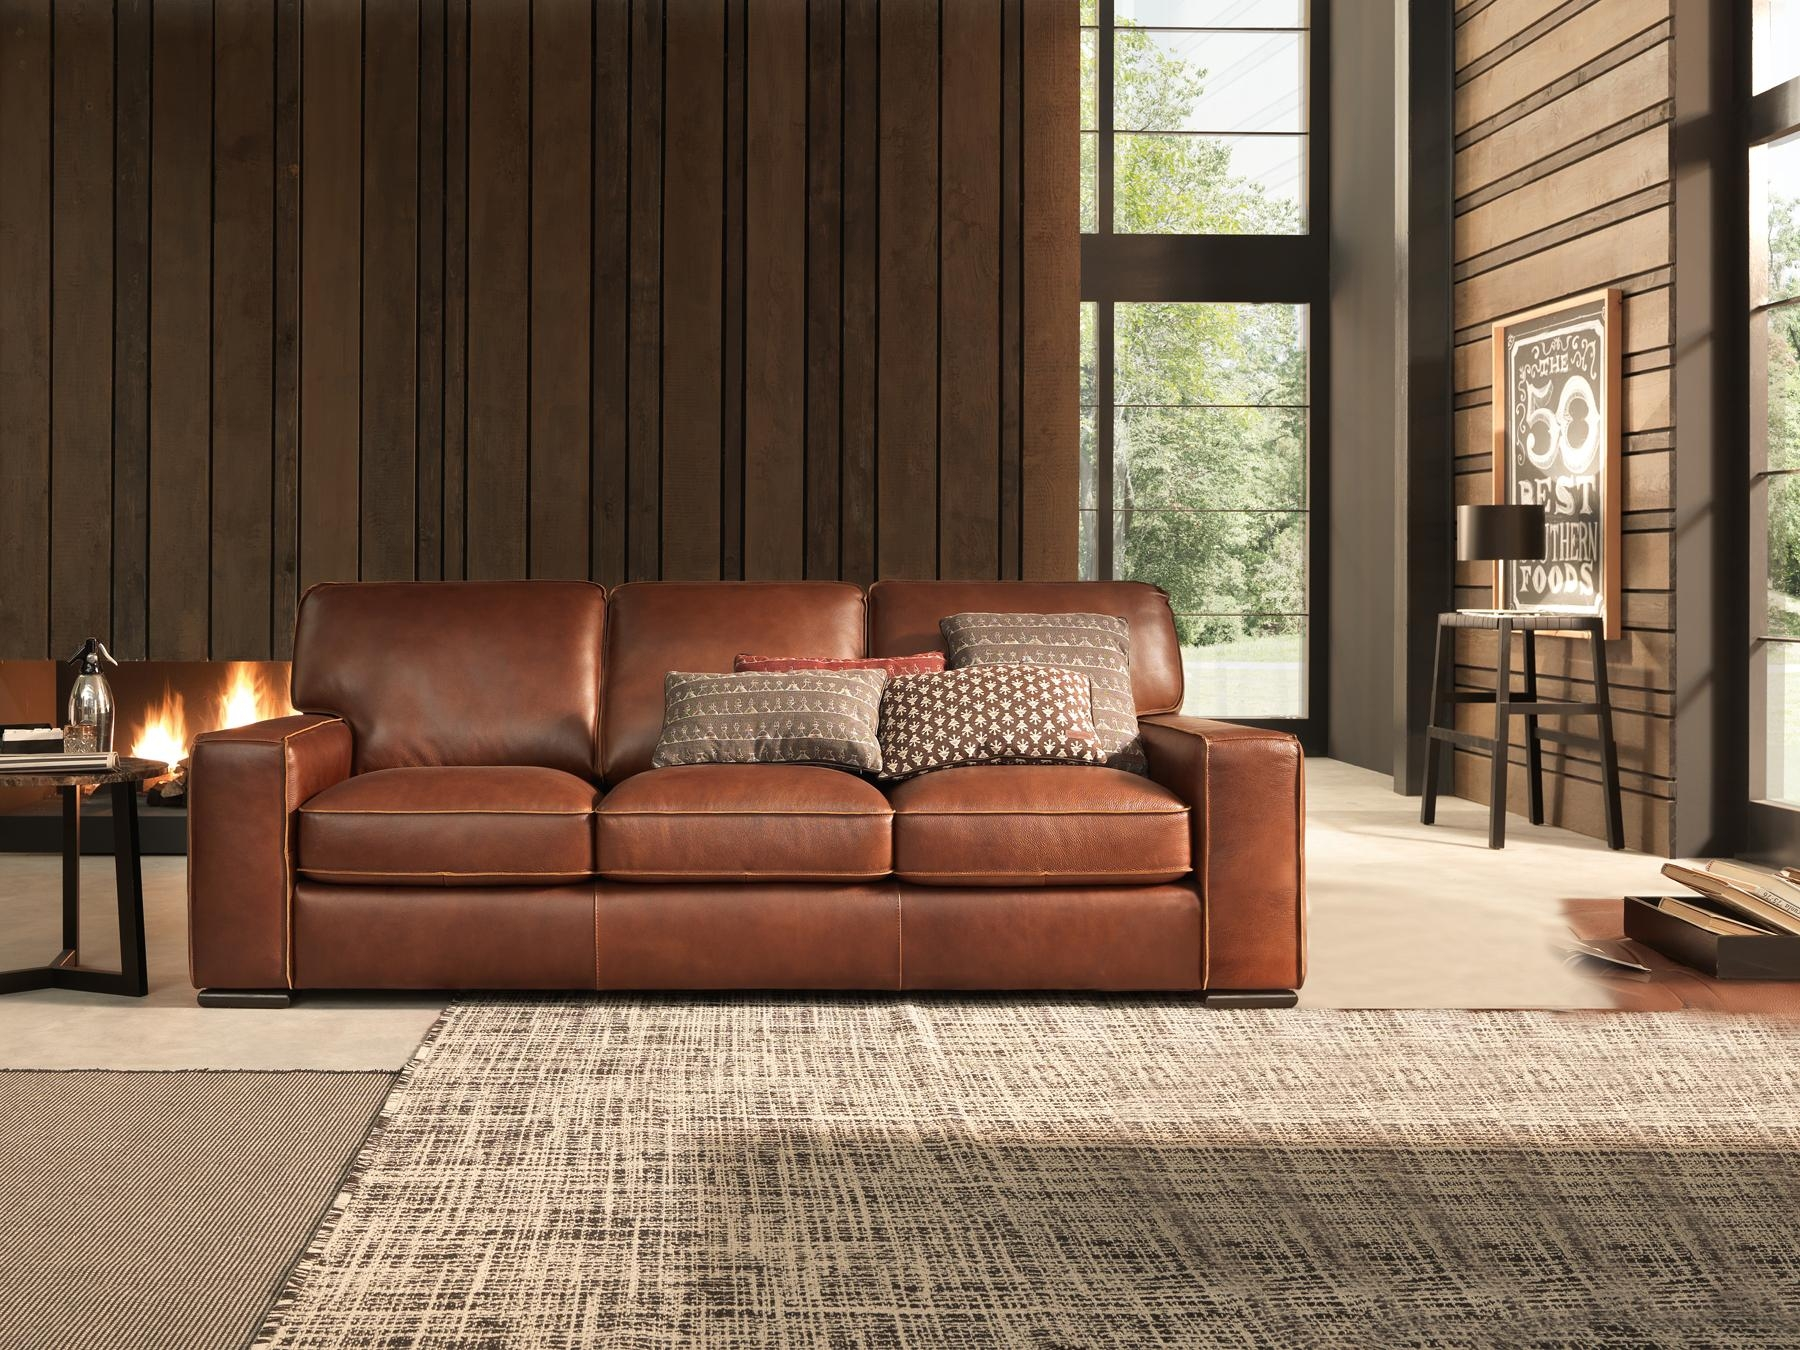 Leather Sofa Furniture Guide – How To Avoid Common Mistakes Inside European Leather Sofas (View 11 of 21)